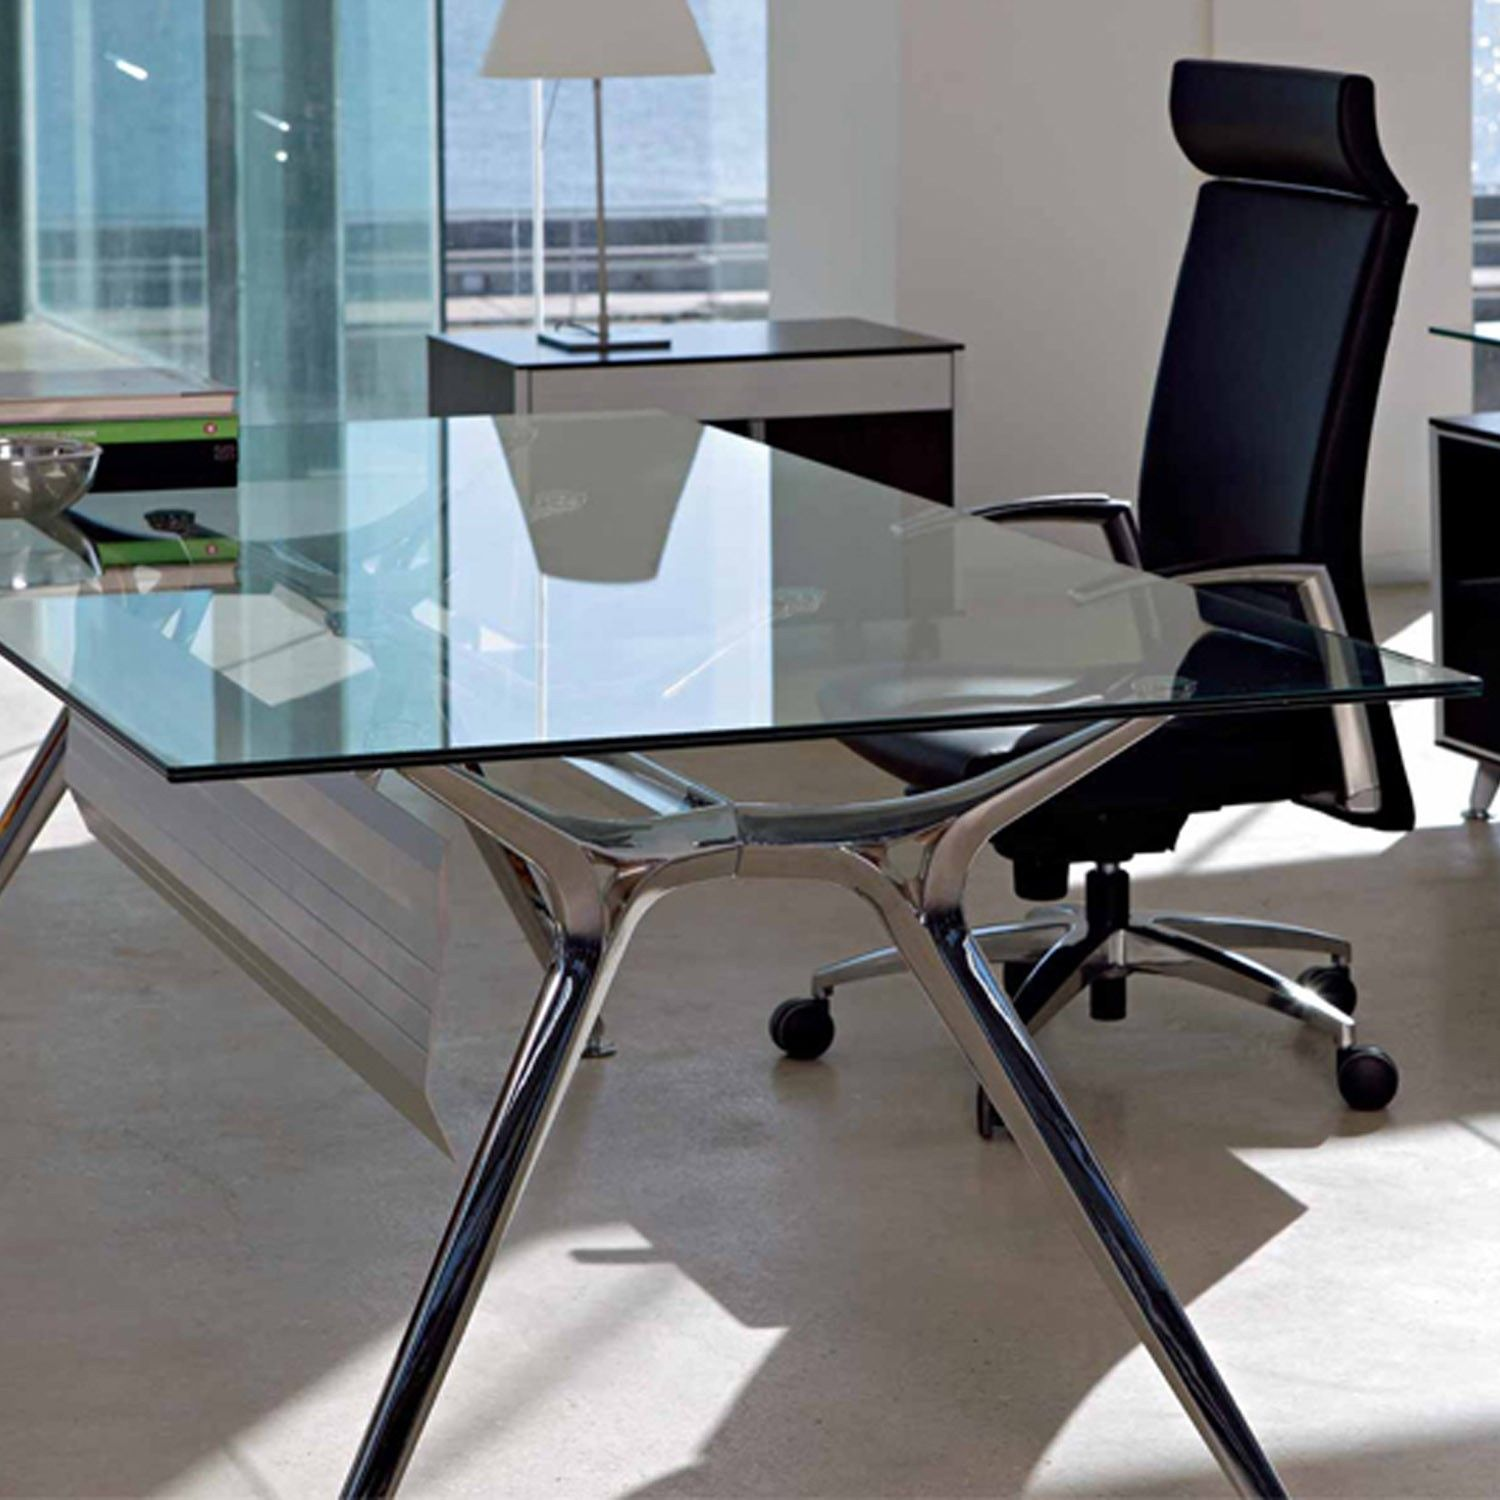 Pin By Annora On Round End Table Home Office Furniture Desk Contemporary Office Desk Glass Office